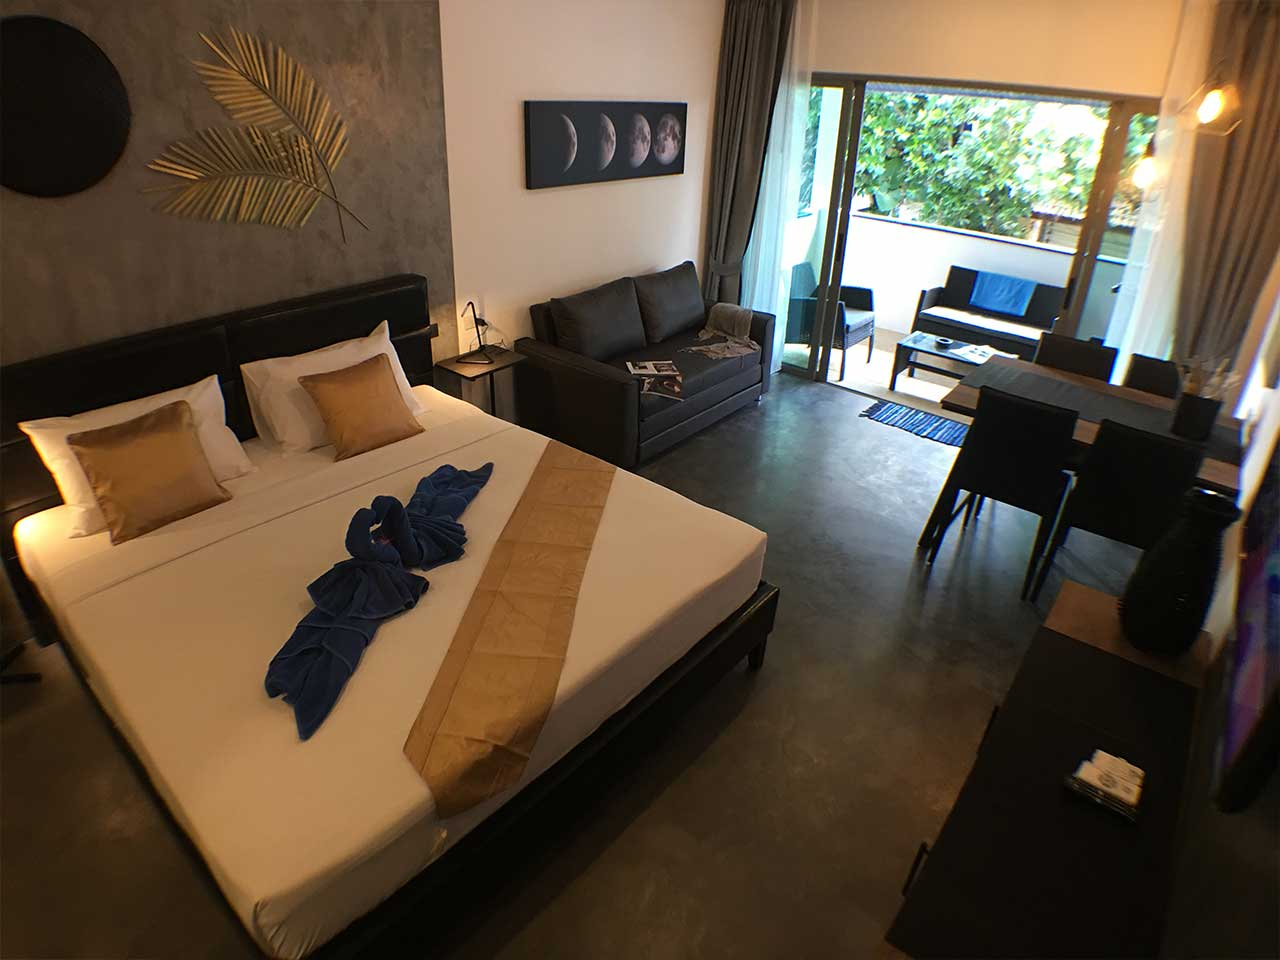 maphrao-resort-kamala-beach-phuket-rooms-interior-STUDIO-23-APARTMENT-10